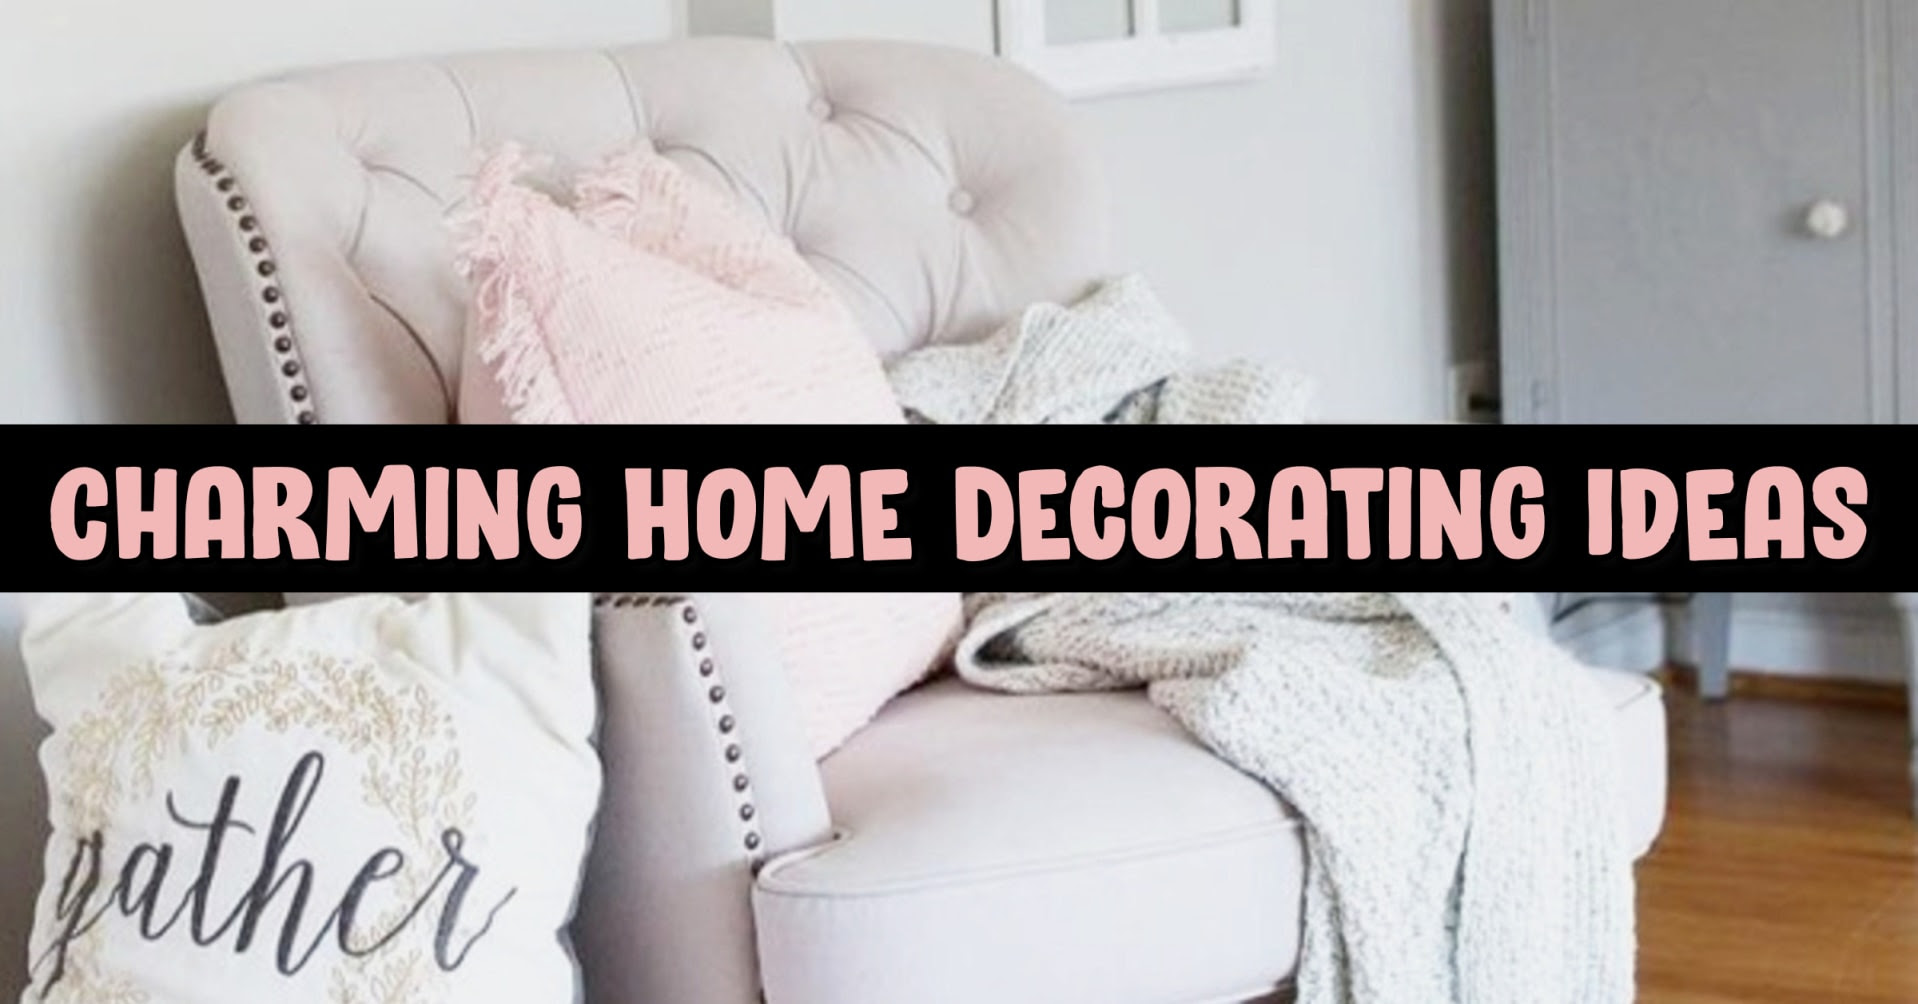 Home Decor on a Budget - Charming and Cozy DIY House Decorating